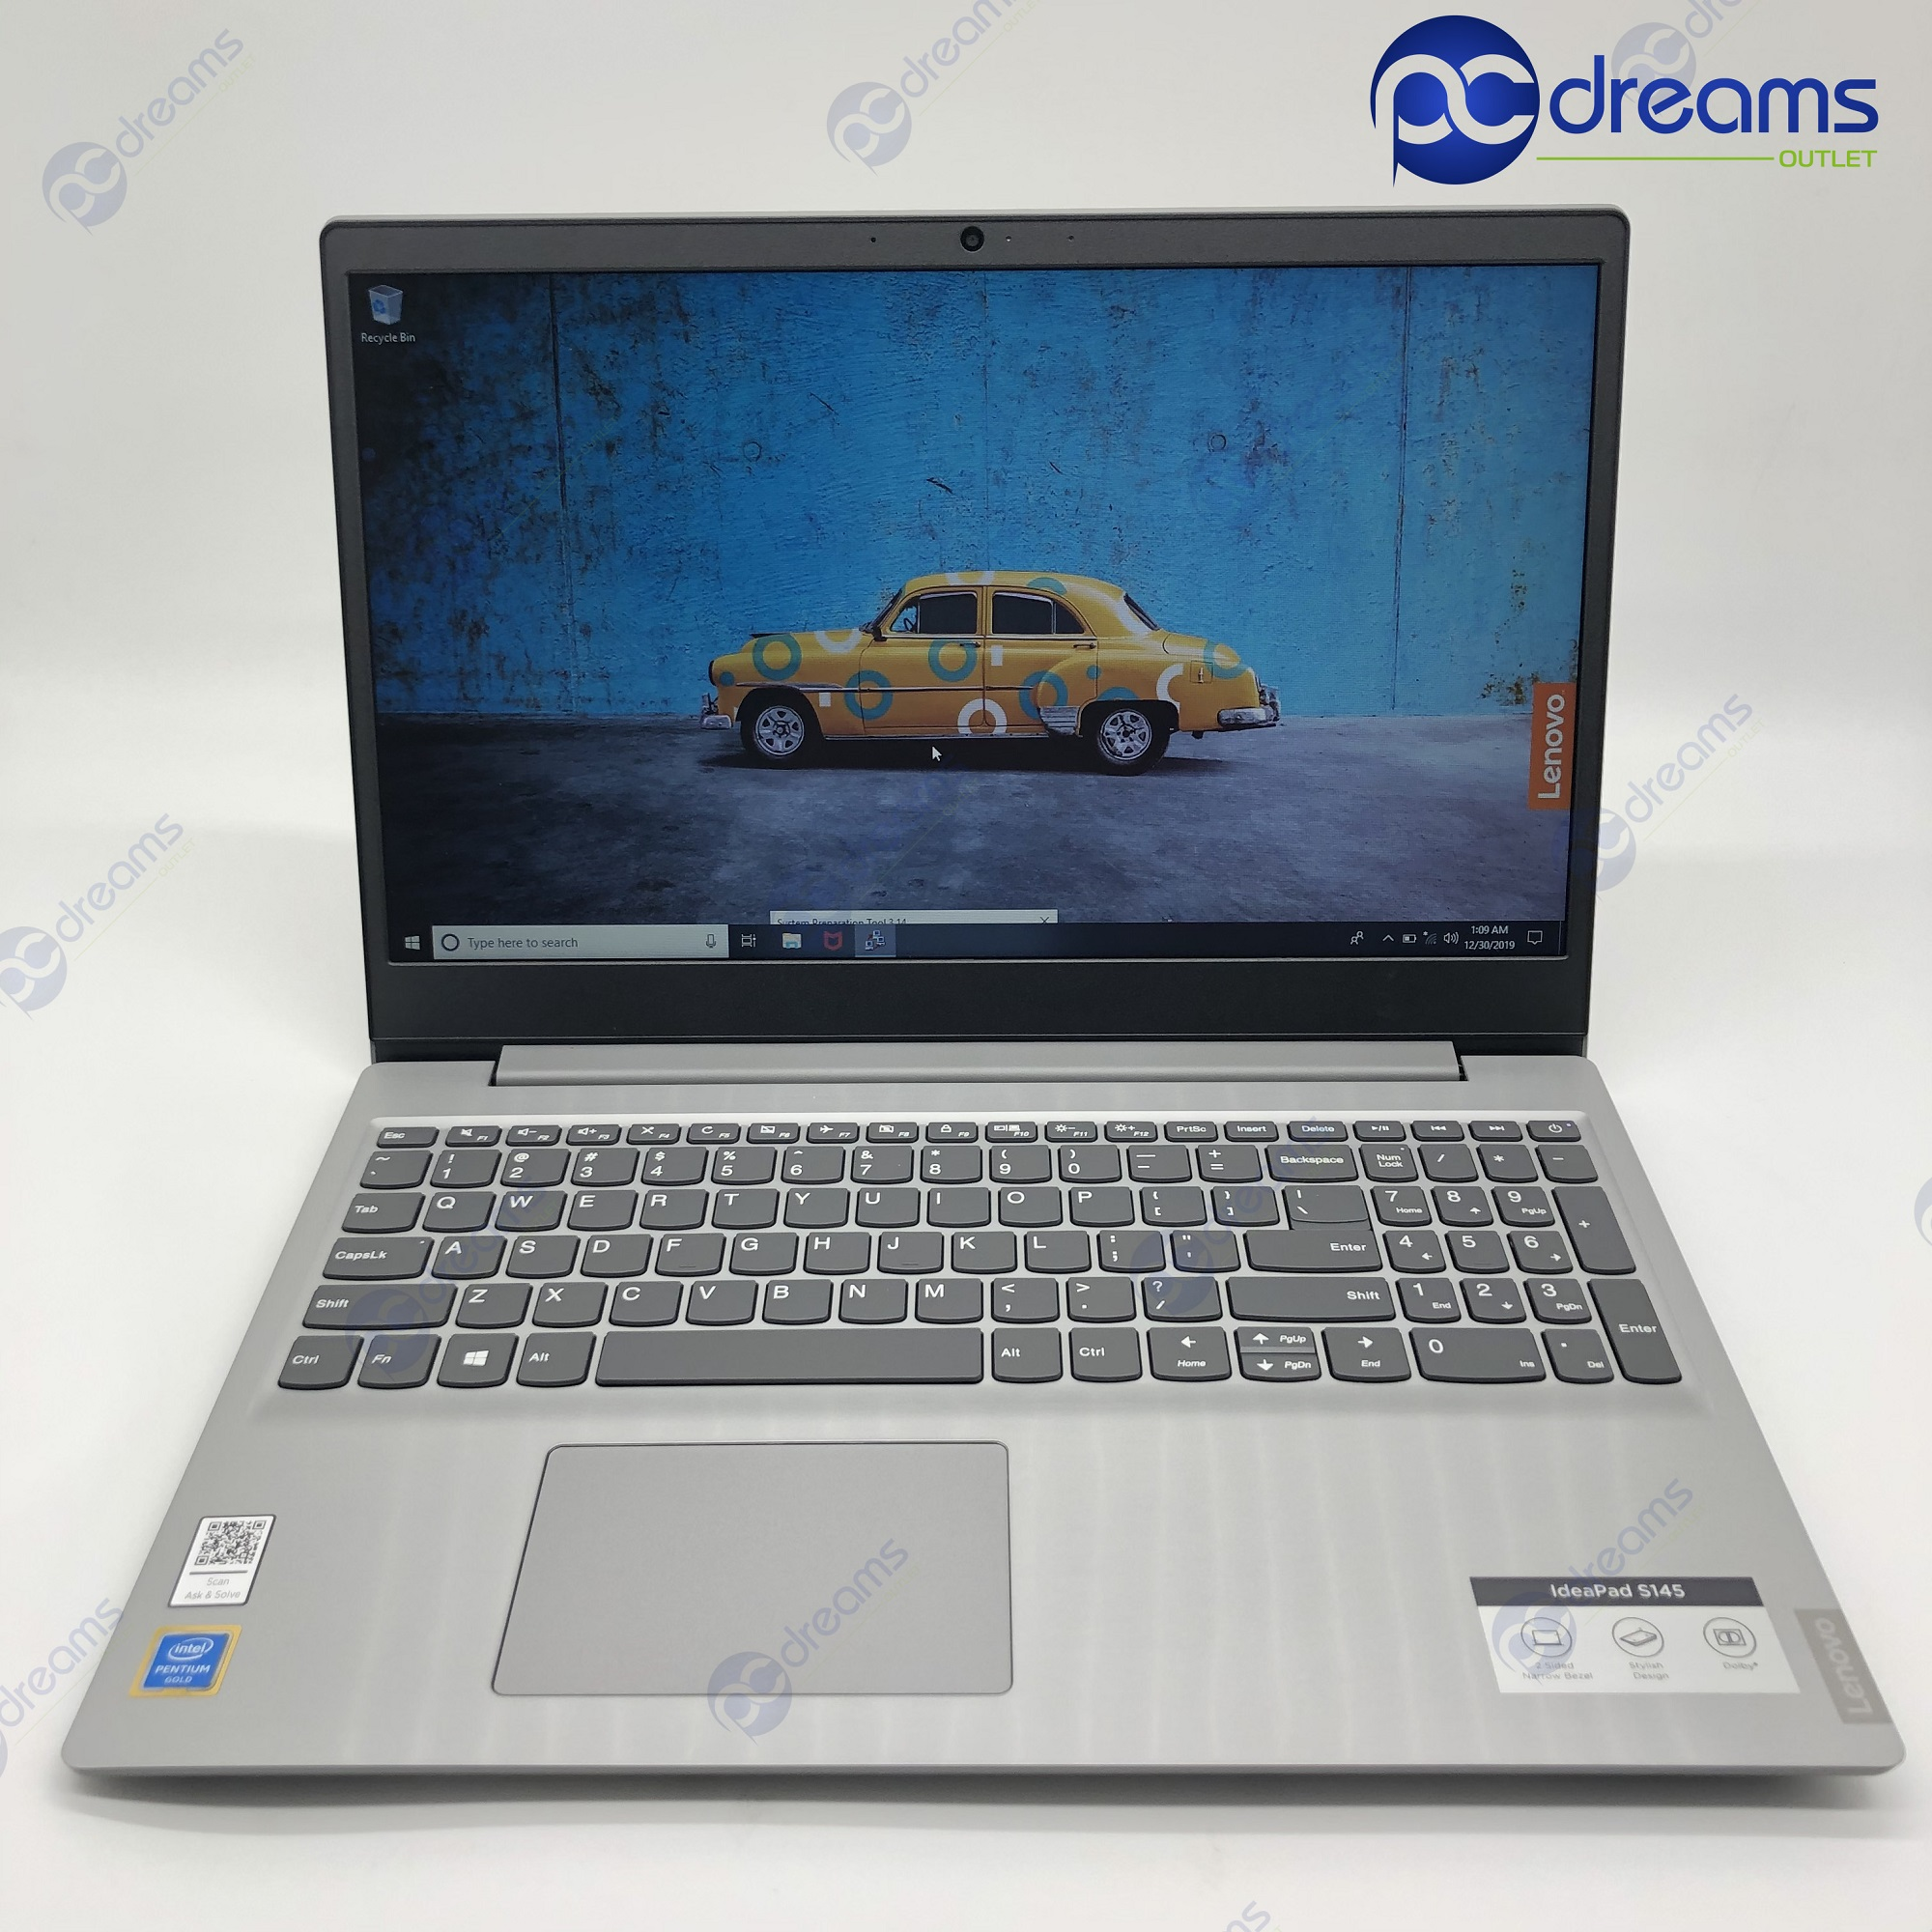 LENOVO IDEAPAD S145-15IWL (81MV00F6SB) PENTIUM GOLD 5405U/8GB/252GB M.2 PCIe SSD [New Reconditioned]